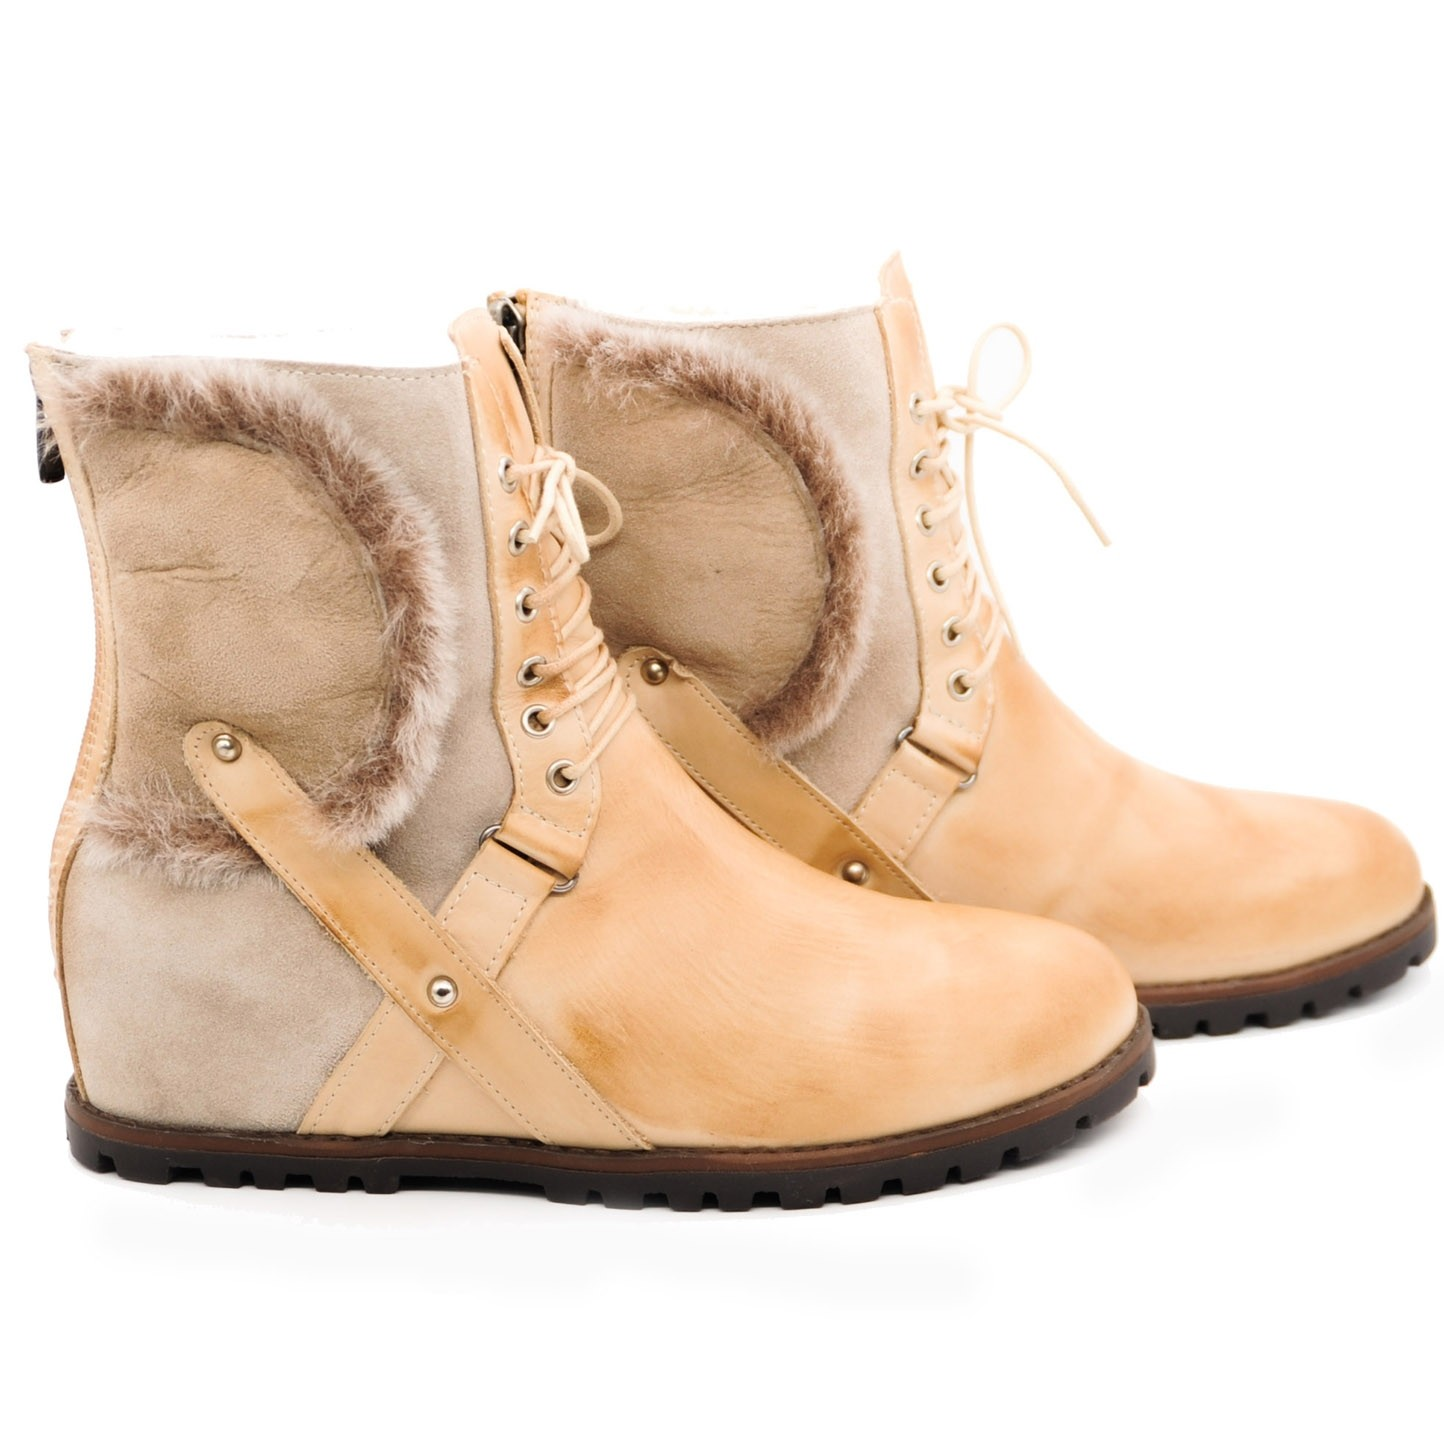 Pegia Leather Sheepskin and Fur Flat Ankle Lace Up Boots Pure Wool Lined and Back Zipped